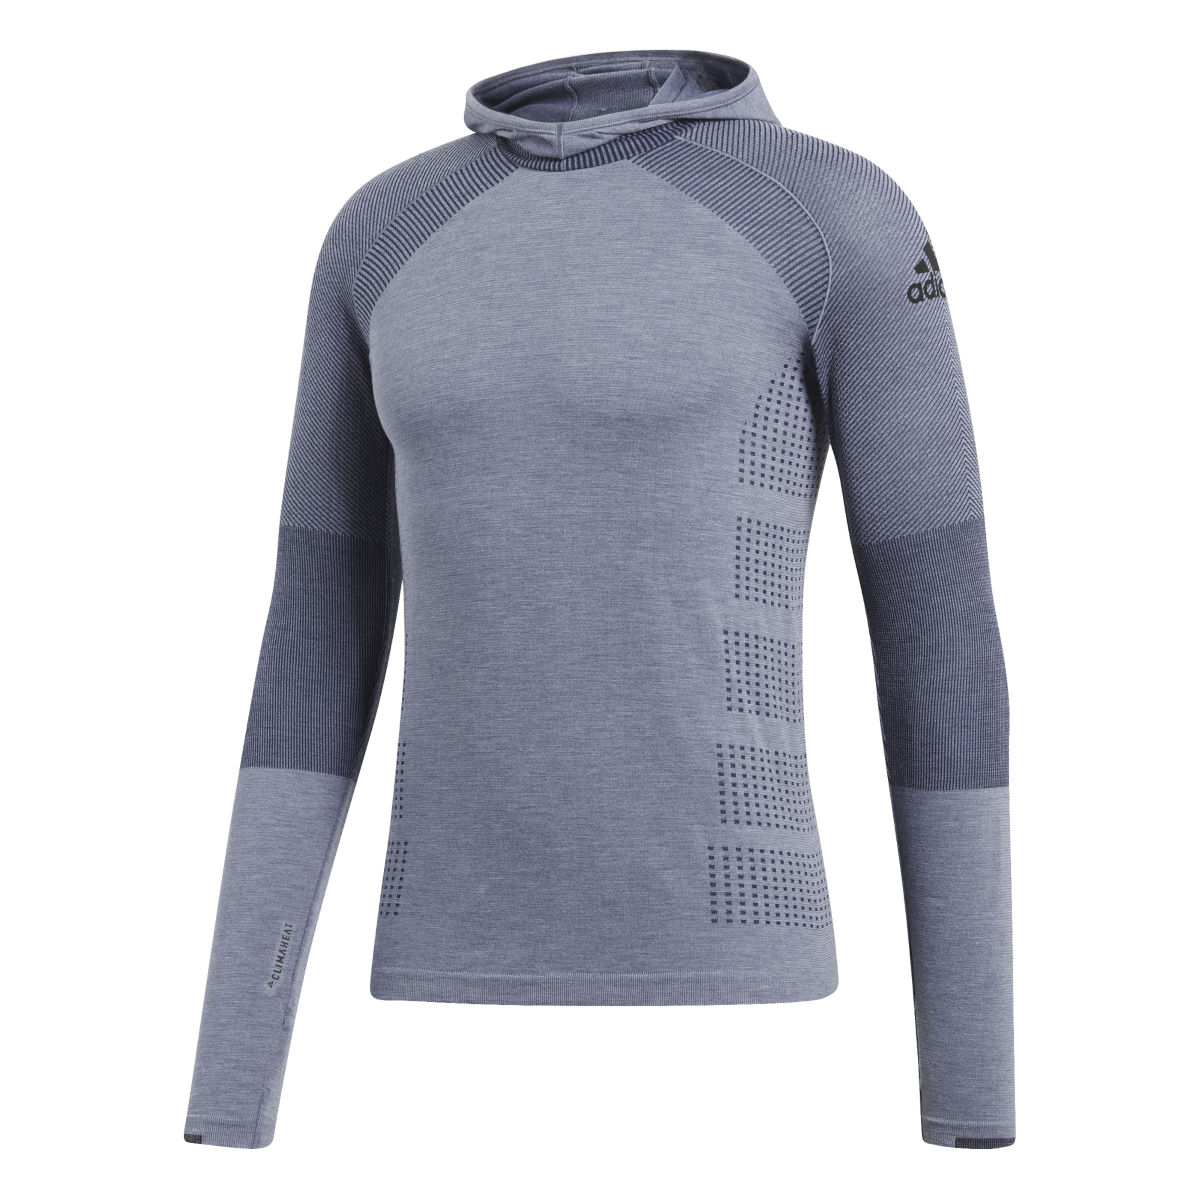 Maillot Adidas Climaheat (manches longues, capuche) - Small